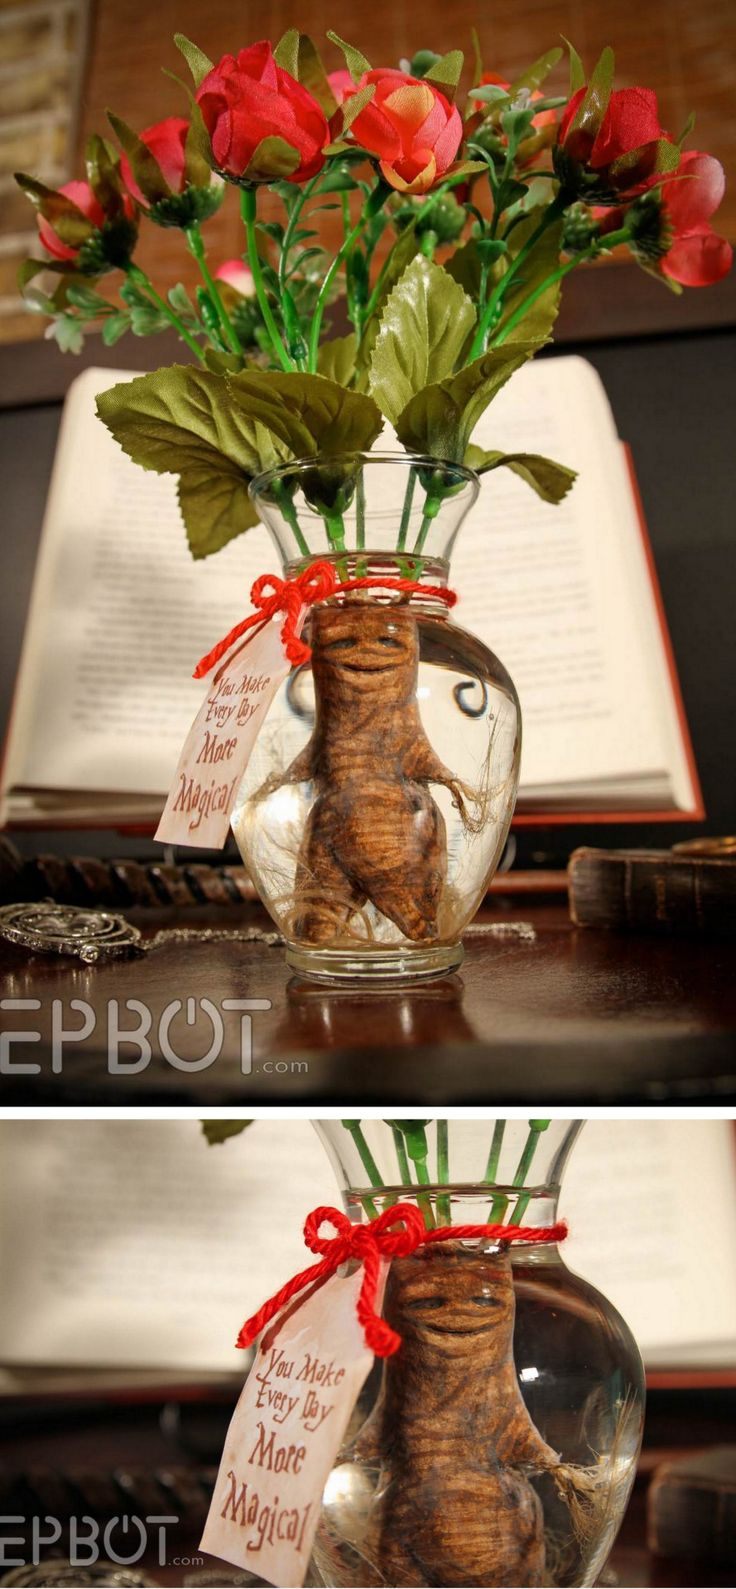 DIY Harry Potter Mandrake Root Bouquet for Valentine's Day Tutorial from EPBOT.Why give a dozen roses when you can give a magical DIY Harry Potter Mandrake Root Bouquet for Valentine's Day? The mandrake is made from air dry clay, and the flowers are...